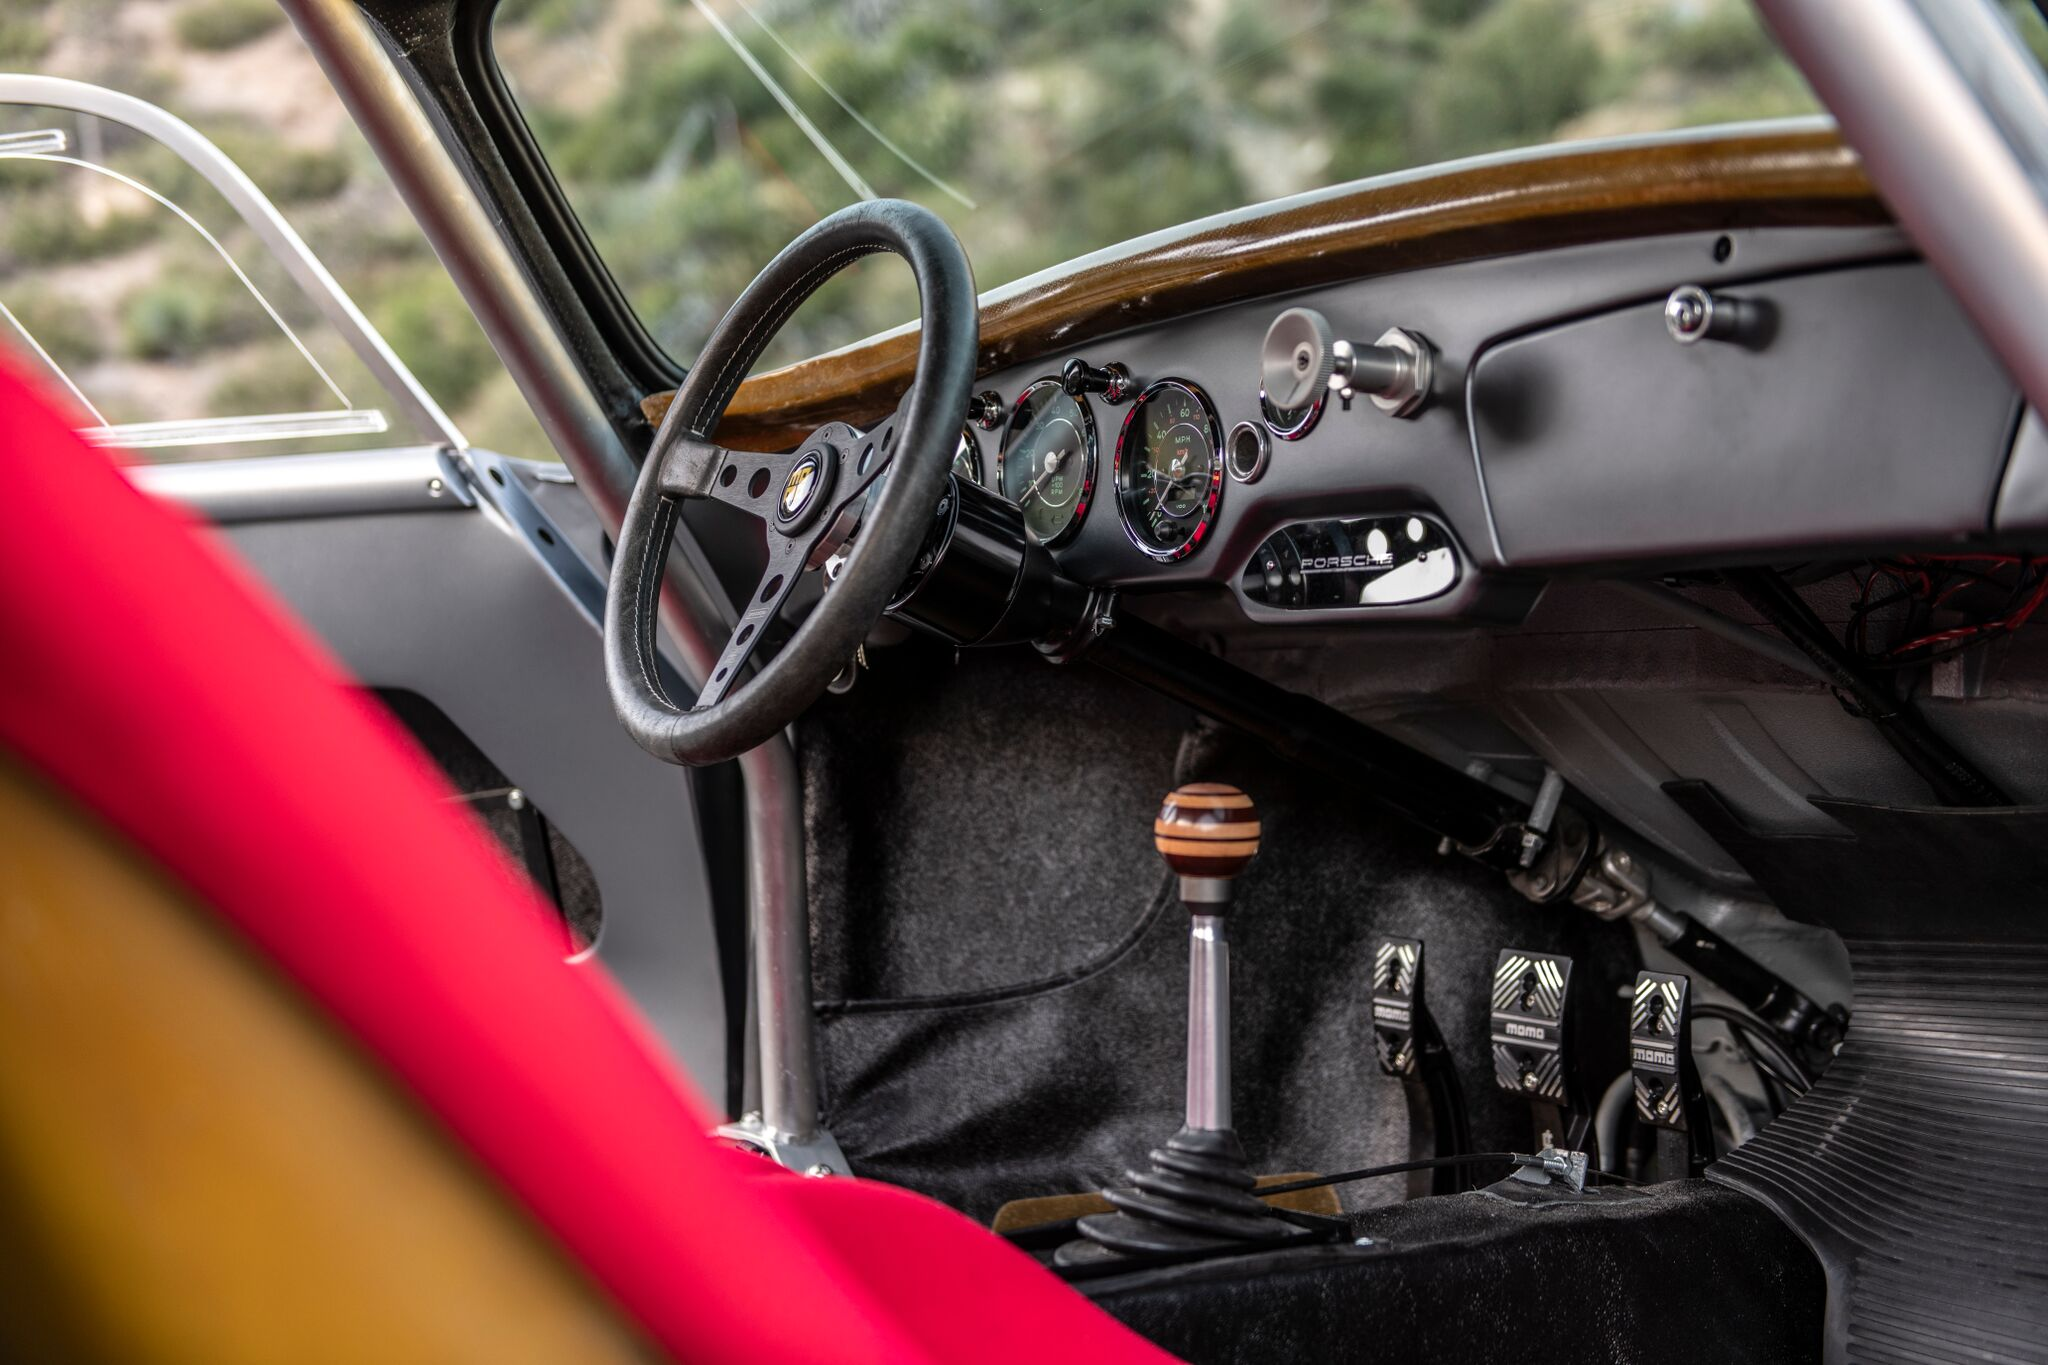 Porsche-356-RSR-Outlaw-by-Momo-and-Emory-motorsports-25